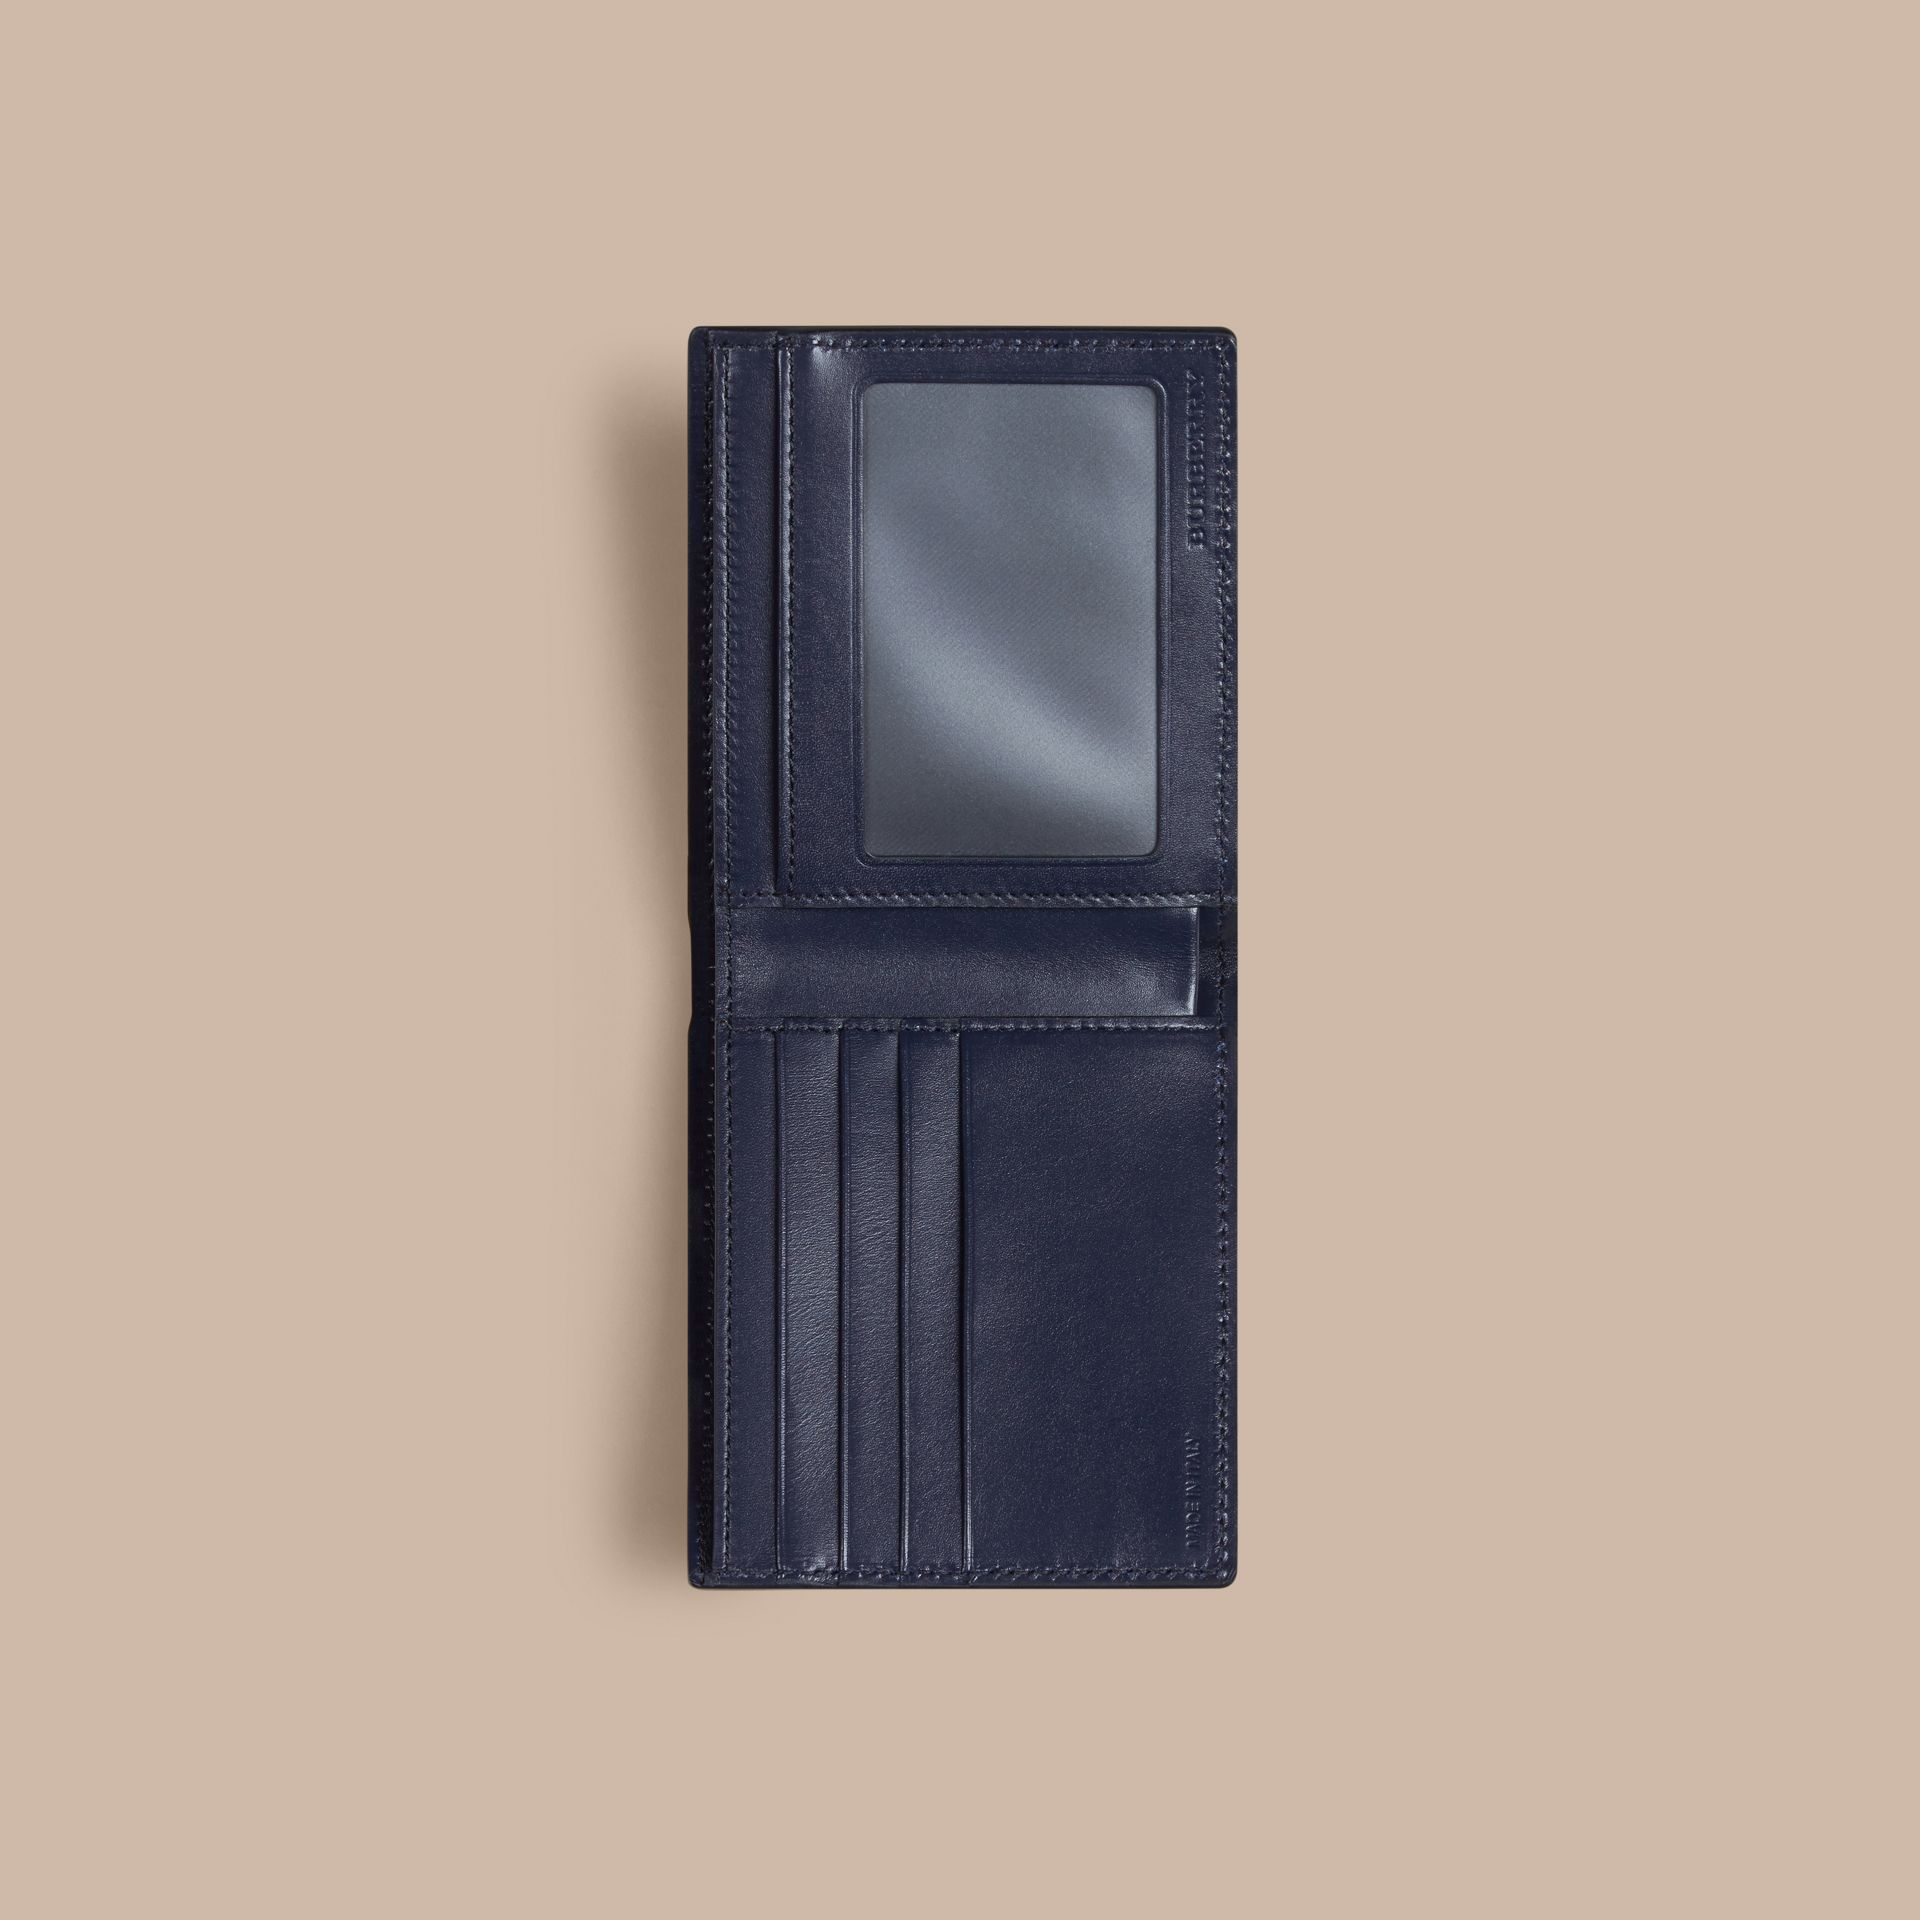 London Leather ID Wallet in Dark Navy - Men | Burberry - gallery image 4